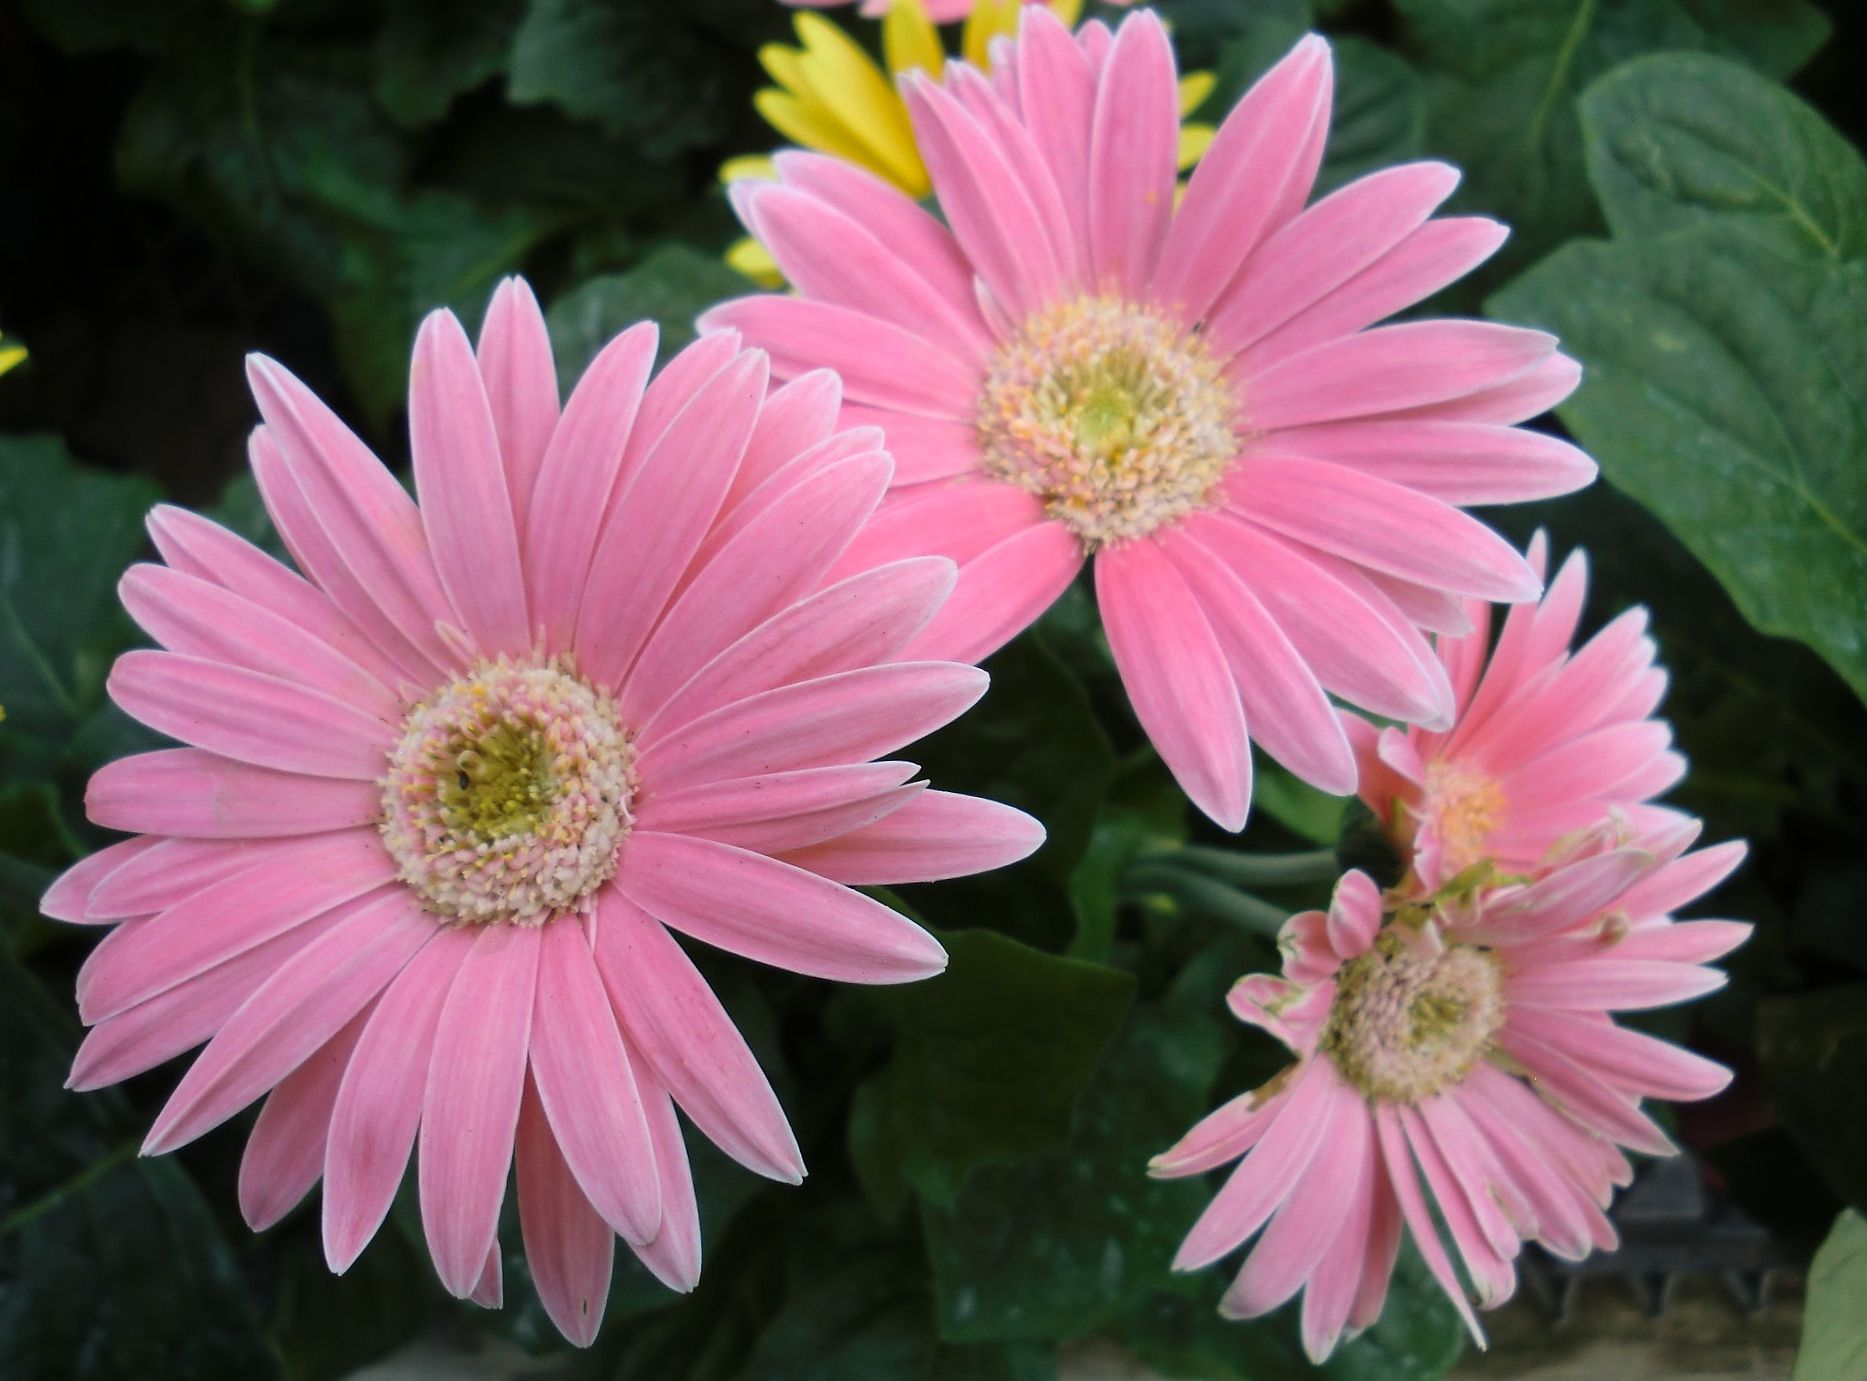 Pink gerbera daisy flores daisies pinterest gerbera flowers gerbera daisy is known for its bright vivid colors and large daisy like flowers that grow on bare stems inches tall it is hardy in zo izmirmasajfo Image collections